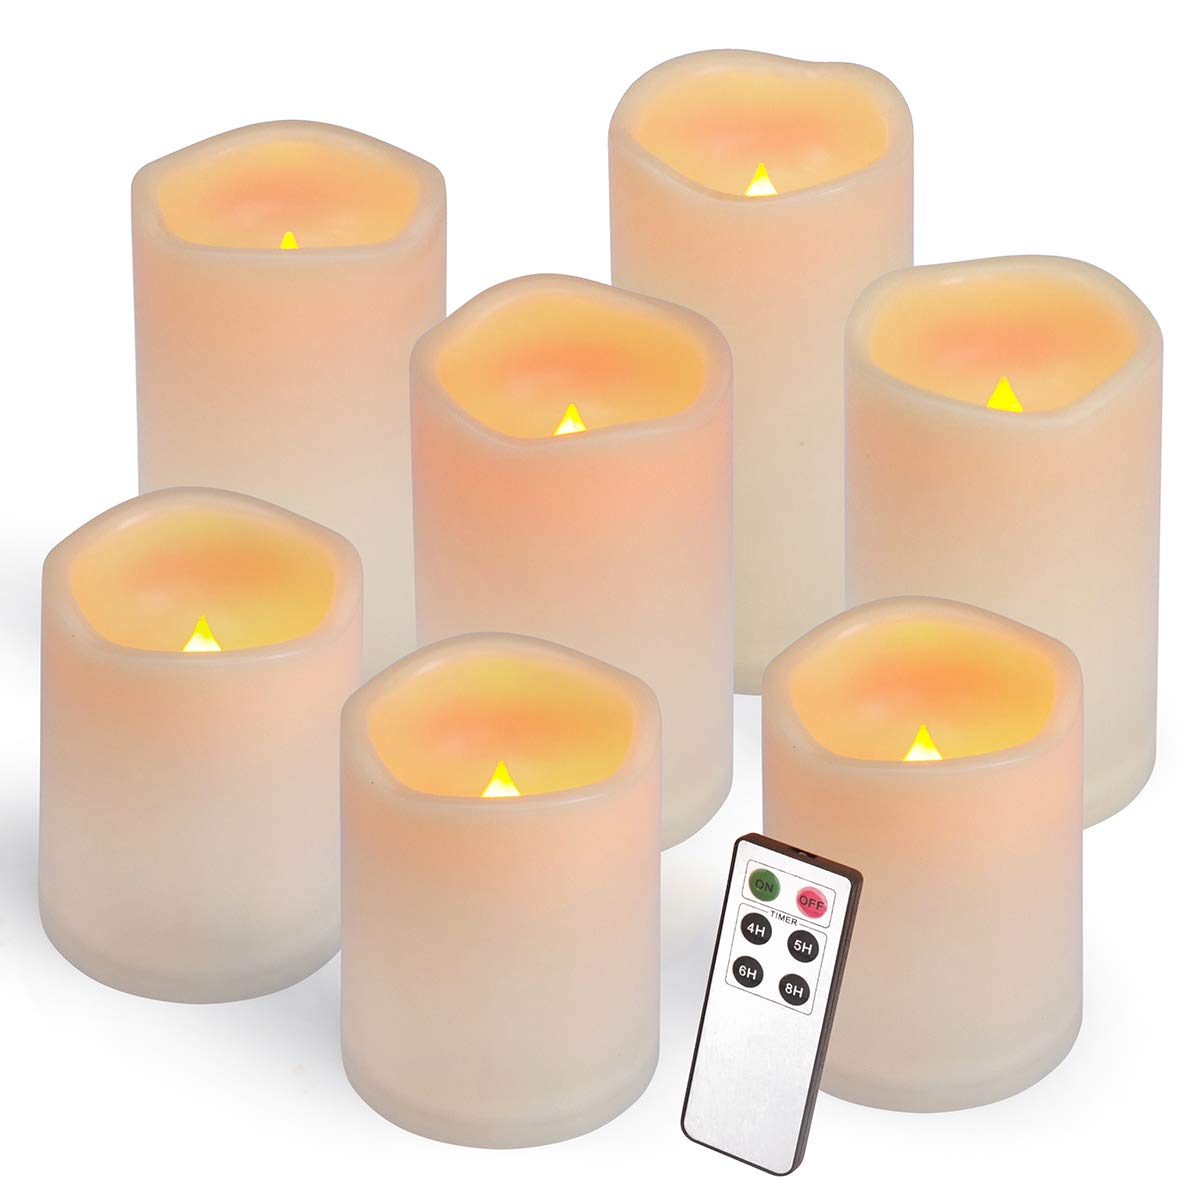 Aignis Flameless Candles, Led Candles Set of 7(H 4'' 4'' 4'' 5'' 5'' 6'' 6'' x D 3'') Ivory Resin Candles Battery Candles with Remote Timer Waterproof Outdoor Indoor Candles by Aignis